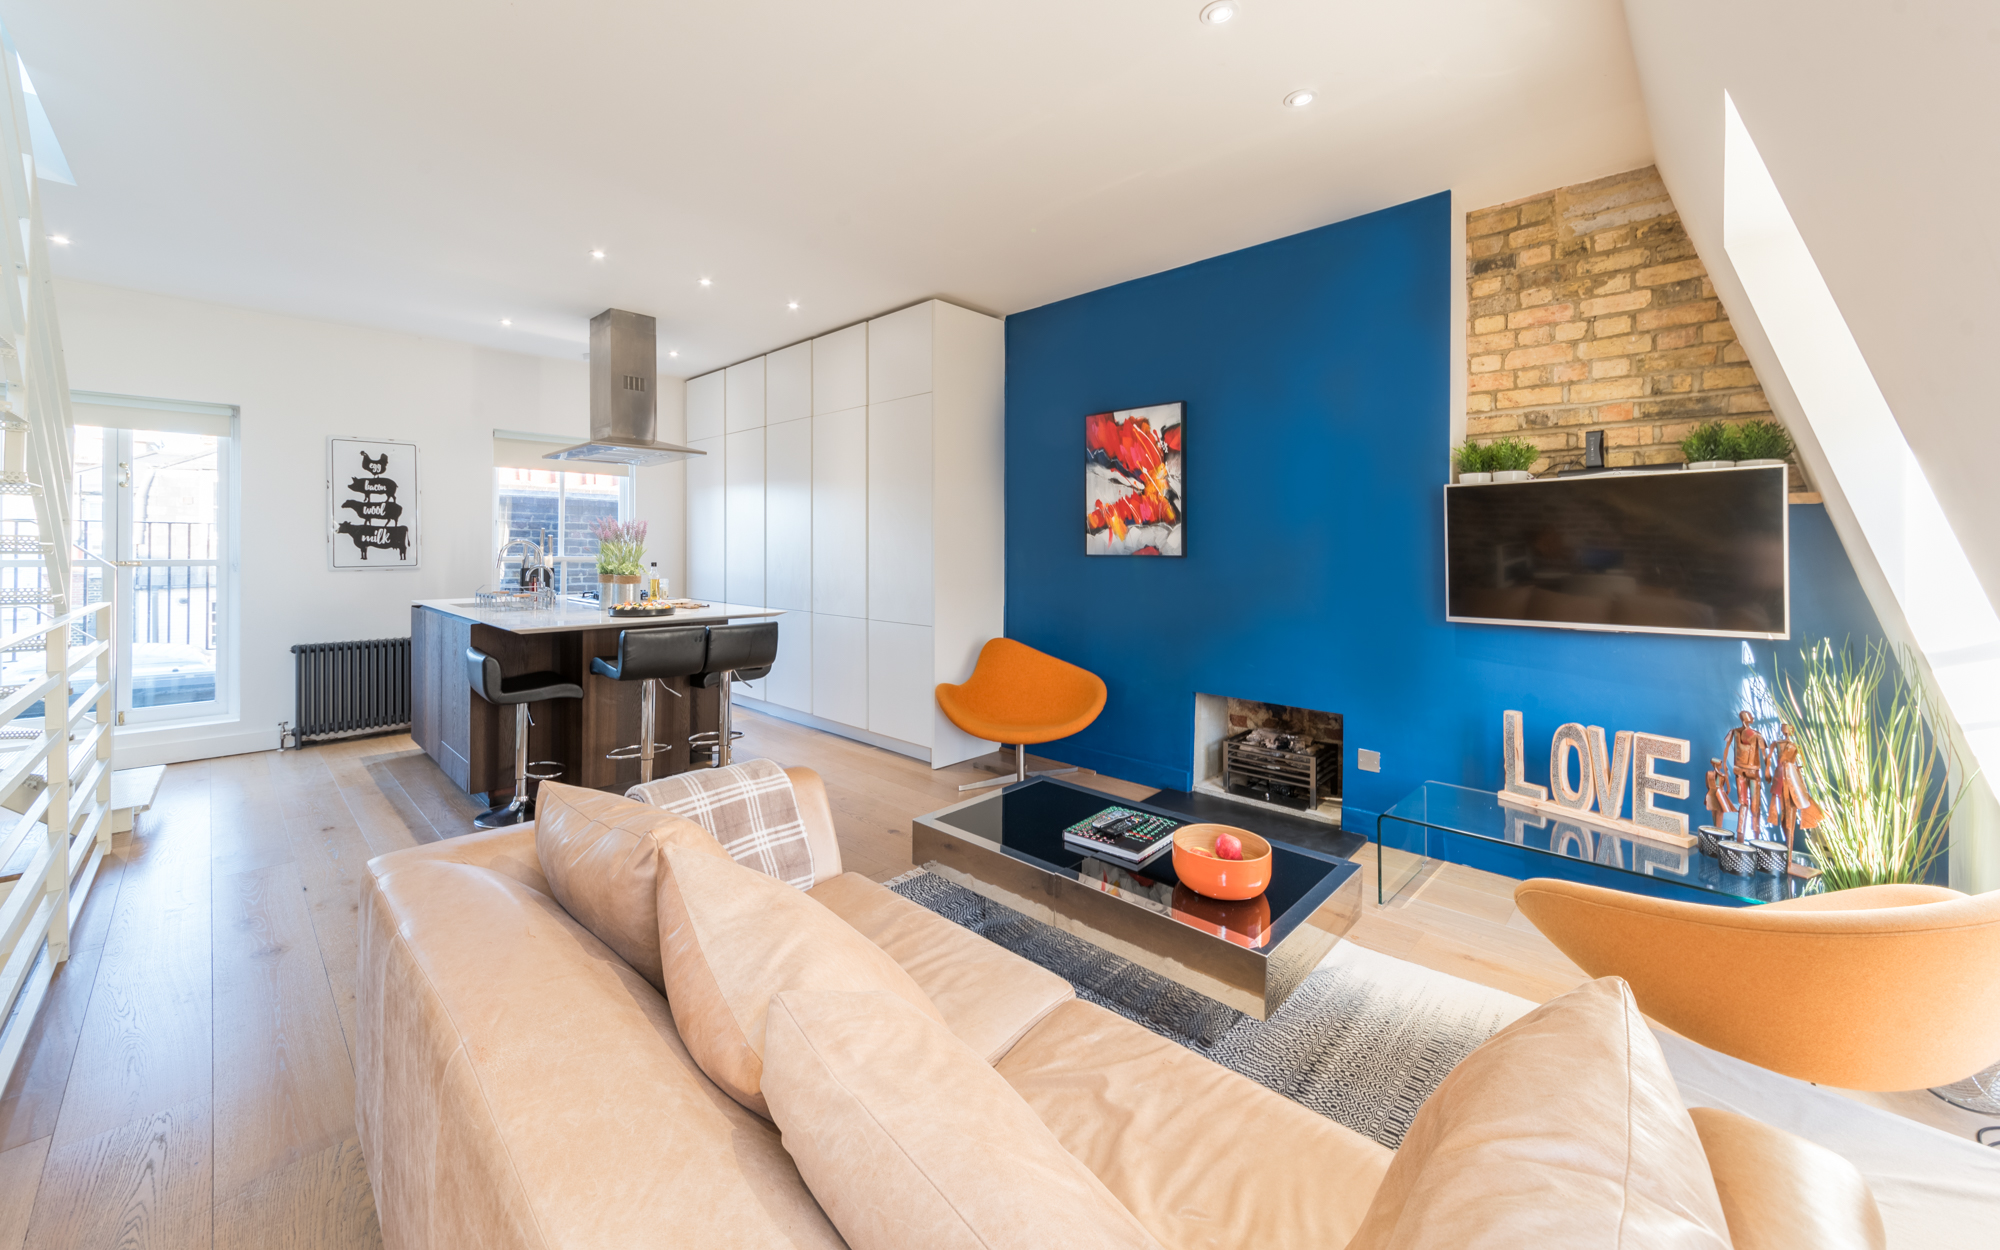 Lovelydays luxury service apartment rental - London - Fitzrovia - Foley Street II - Lovelysuite - 2 bedrooms - 2 bathrooms - Luxury living room - 9f171d1bb69f - Lovelydays